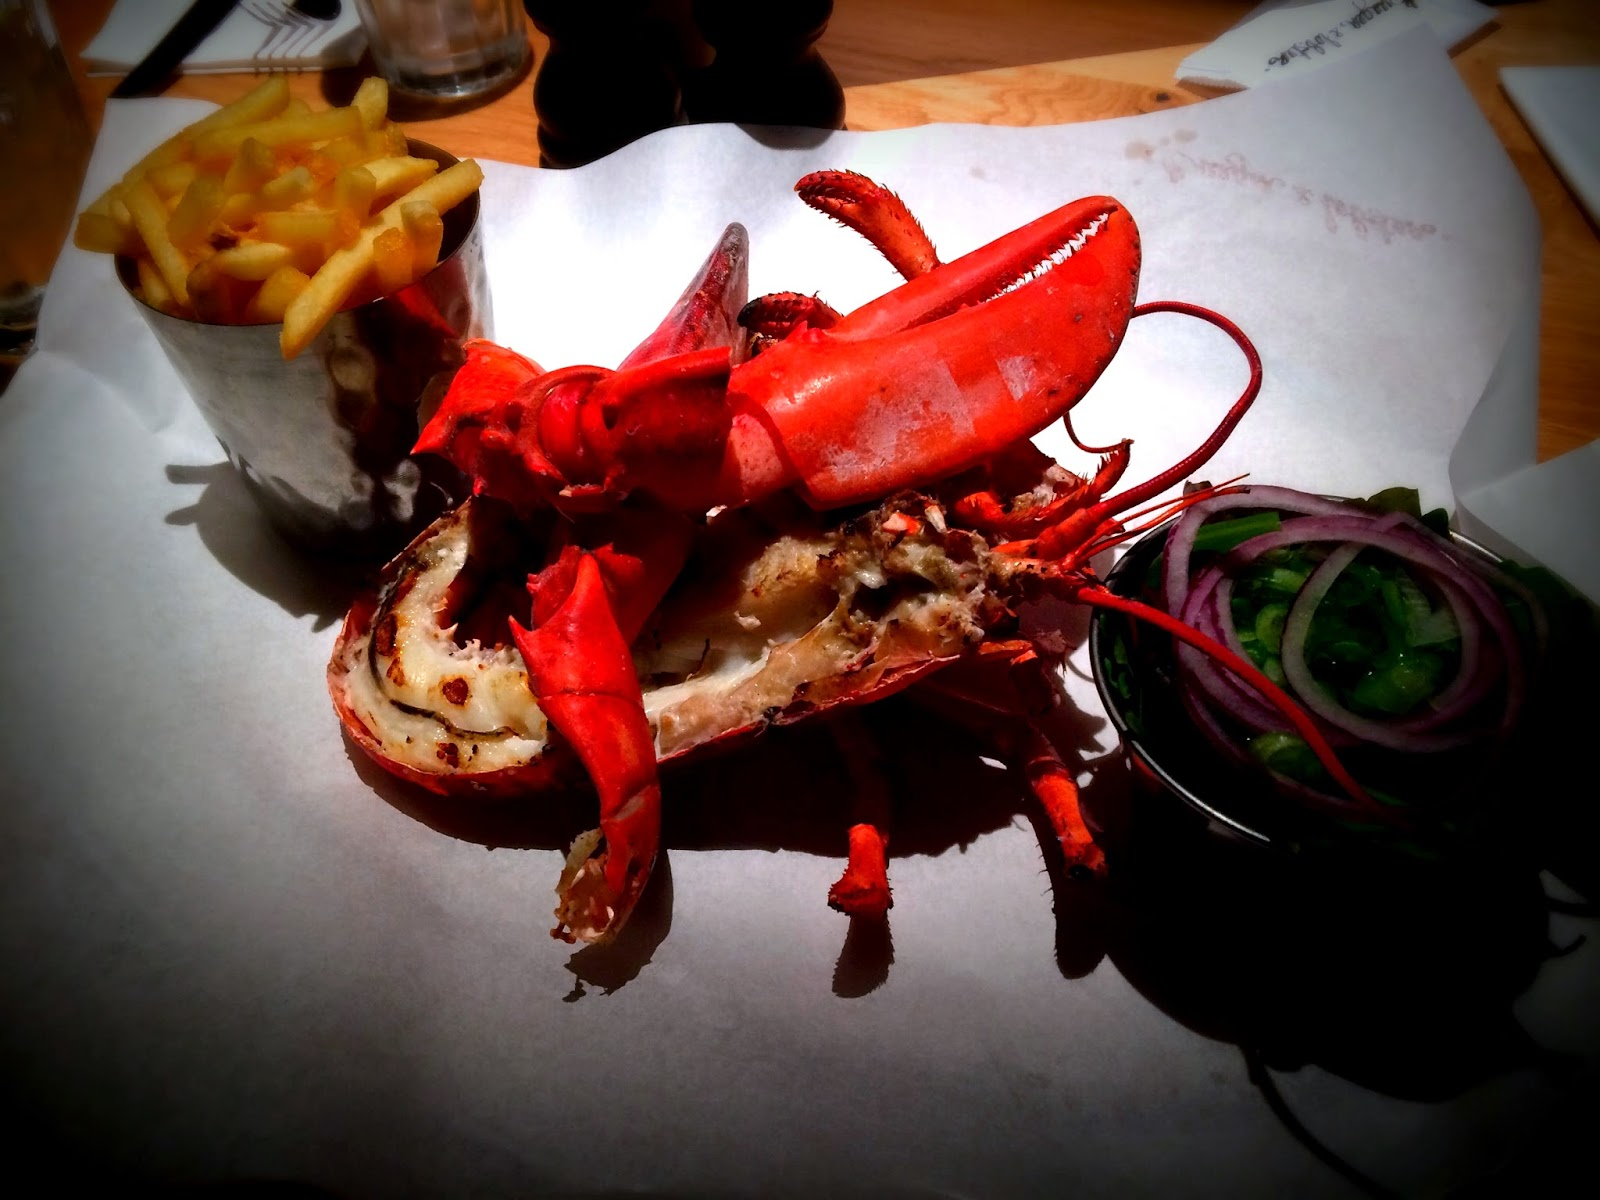 Grilled Lobster at Burger & Lobster, Burger & Lobster Cardiff, St Davids II, Restaurants in Cardiff, Seafood in Cardiff